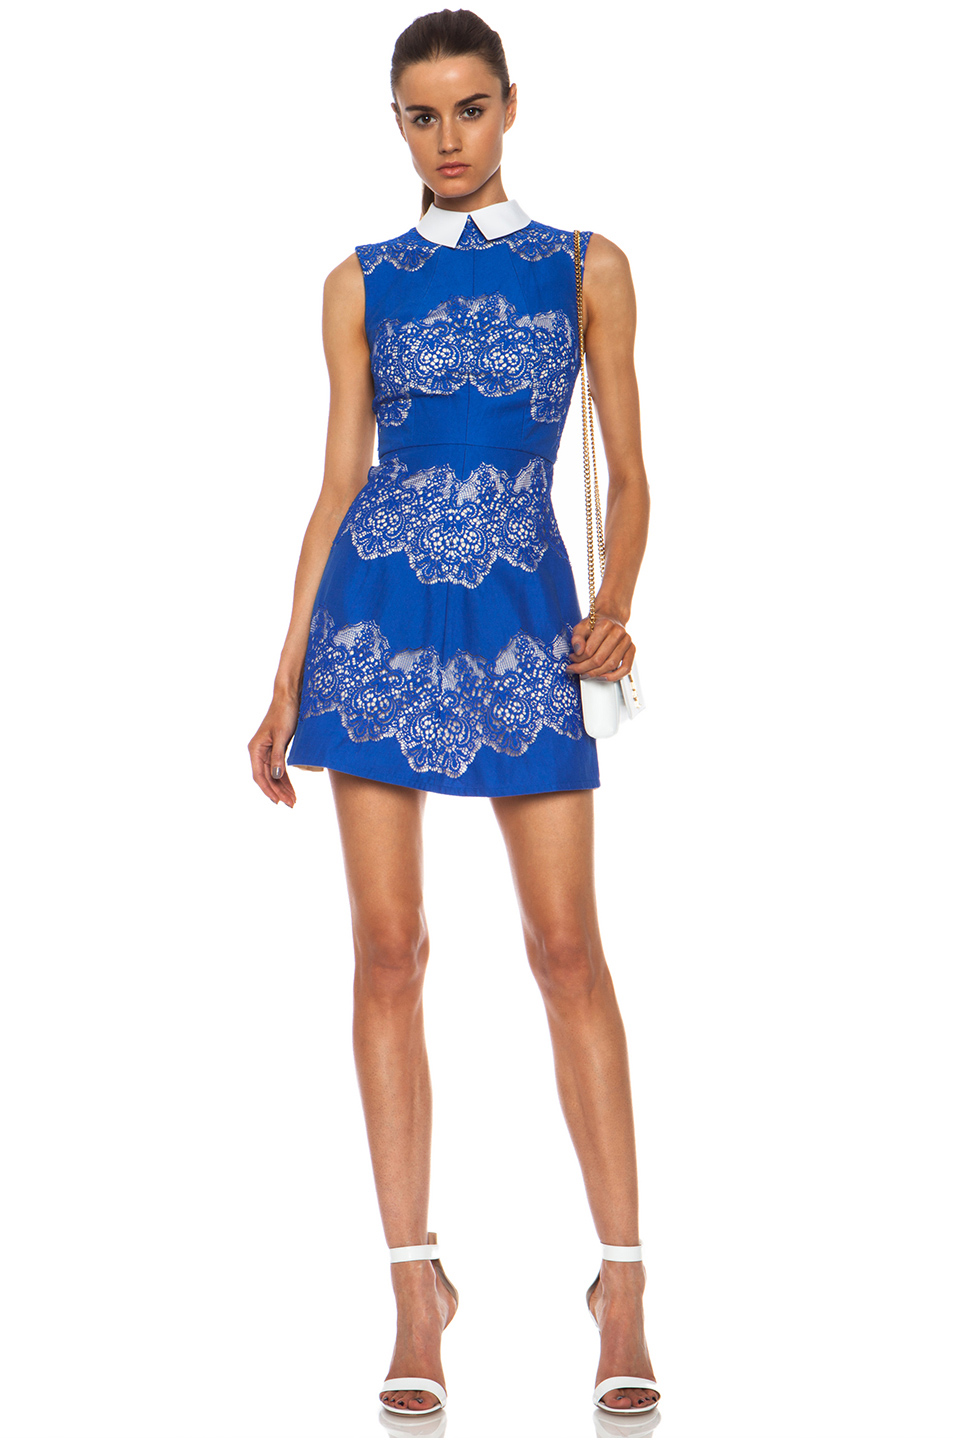 Daily Find: Dive into Summer with Lover's Royal Blue Chelsea Dress